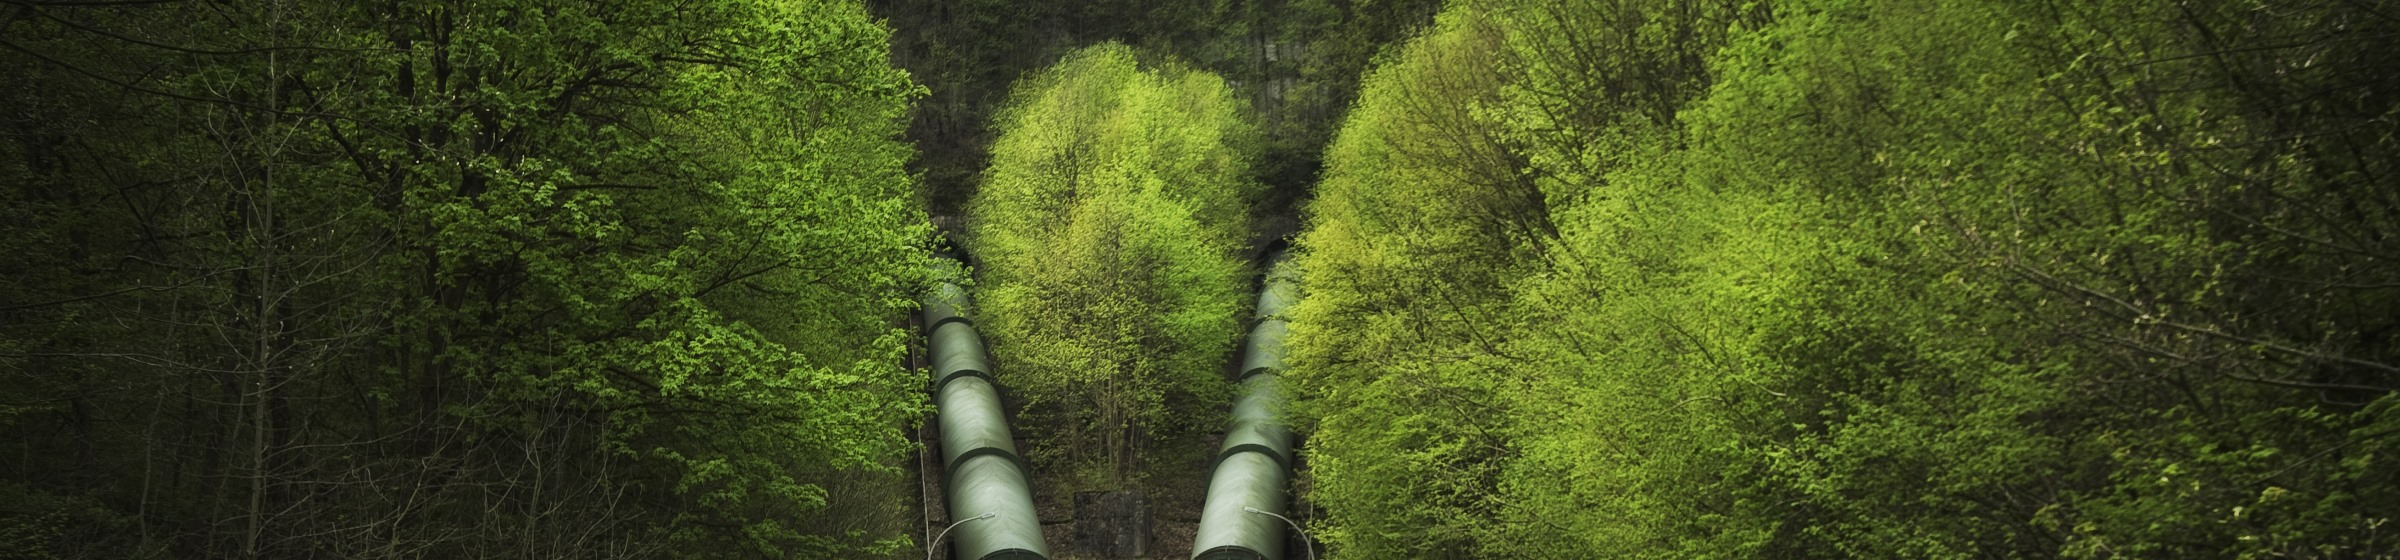 Pressure pipelines in green surroundings